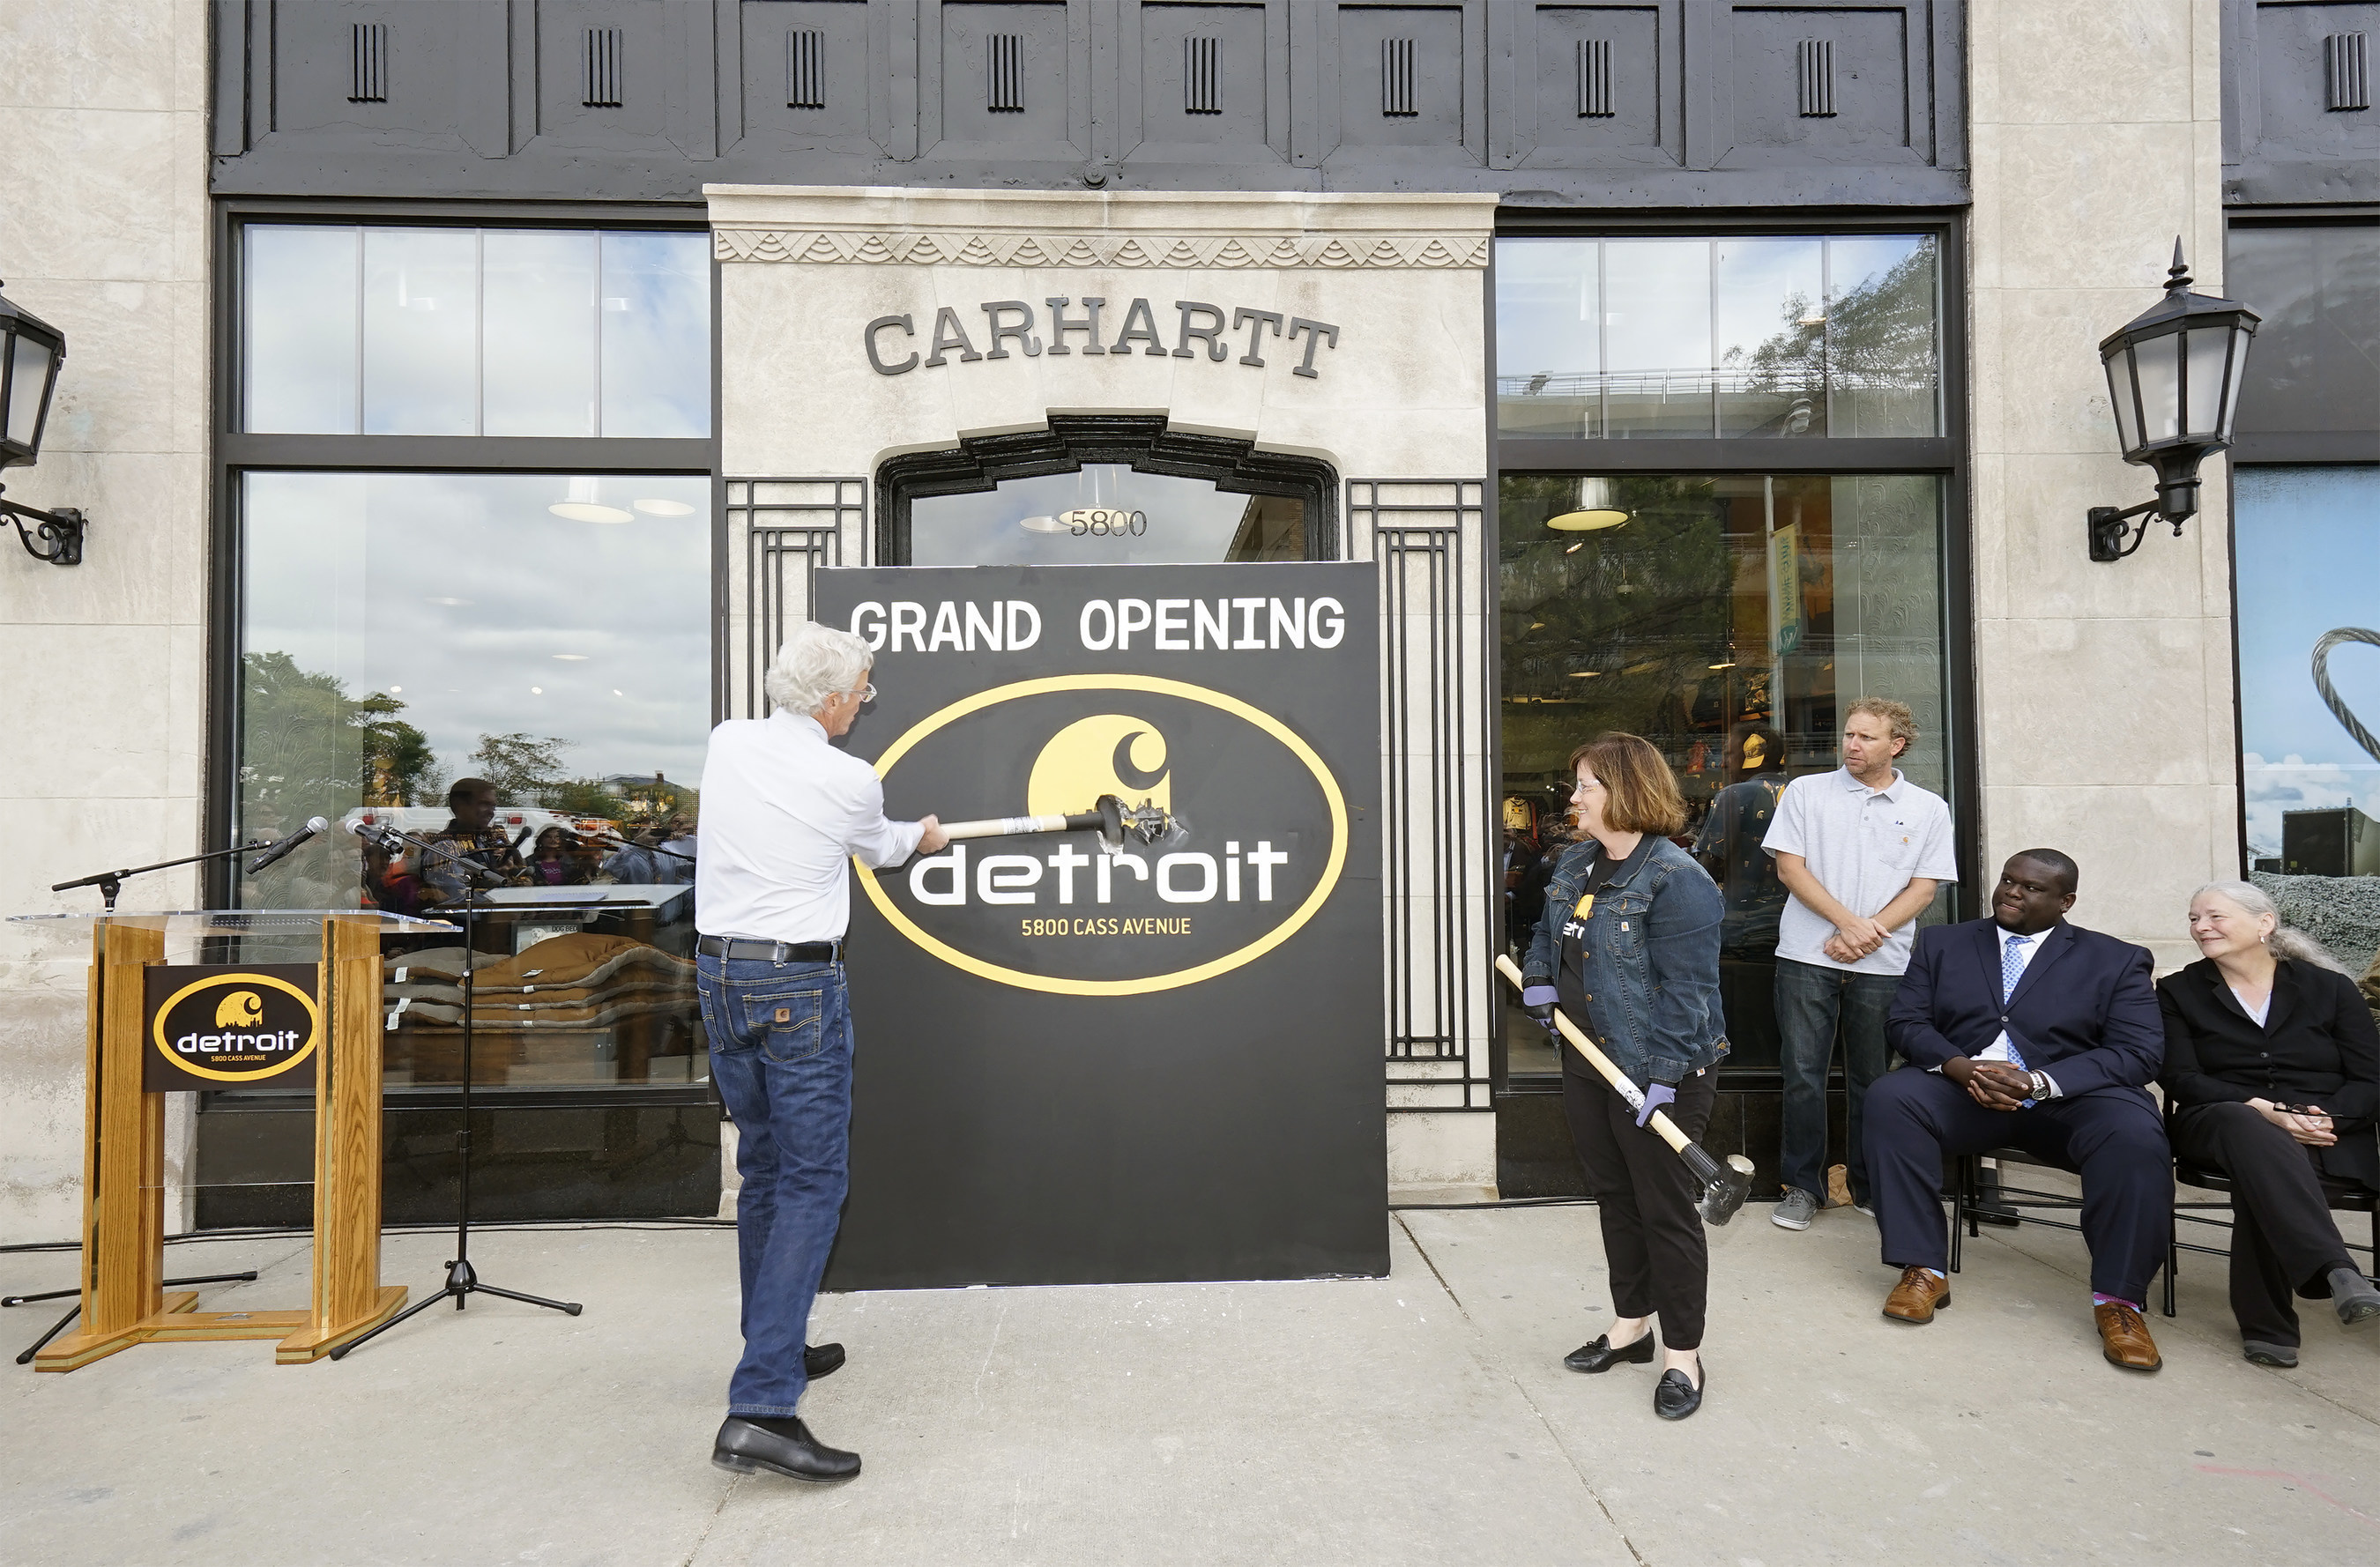 Carhartt CEO and Chairman of the Board, Mark Valade and Carhartt President and COO, Linda Hubbard prepare to open Carhartt's new flagship store in Midtown Detroit in Carhartt style by busting through a wall in lieu of a traditional ribbon-cutting ceremony.